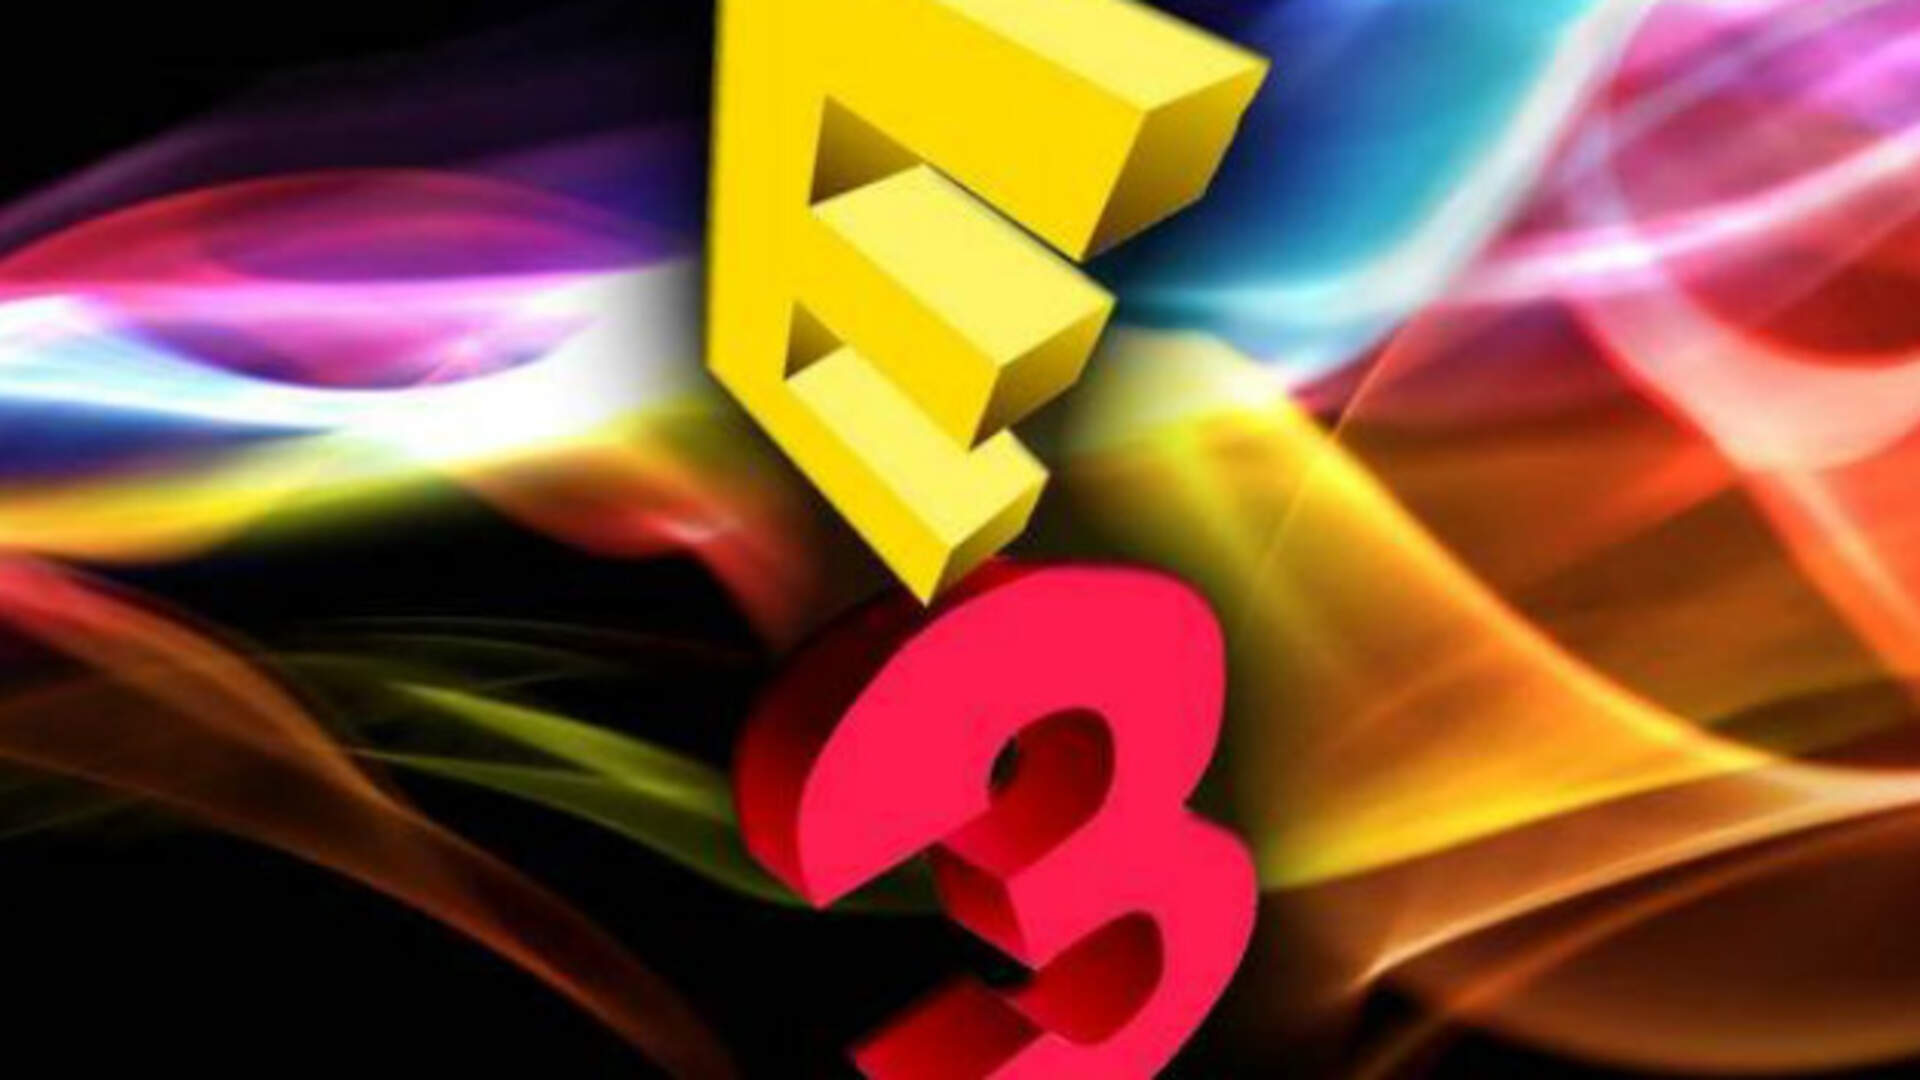 What's Happening to E3 2016? It's No Longer The Only Game in Town